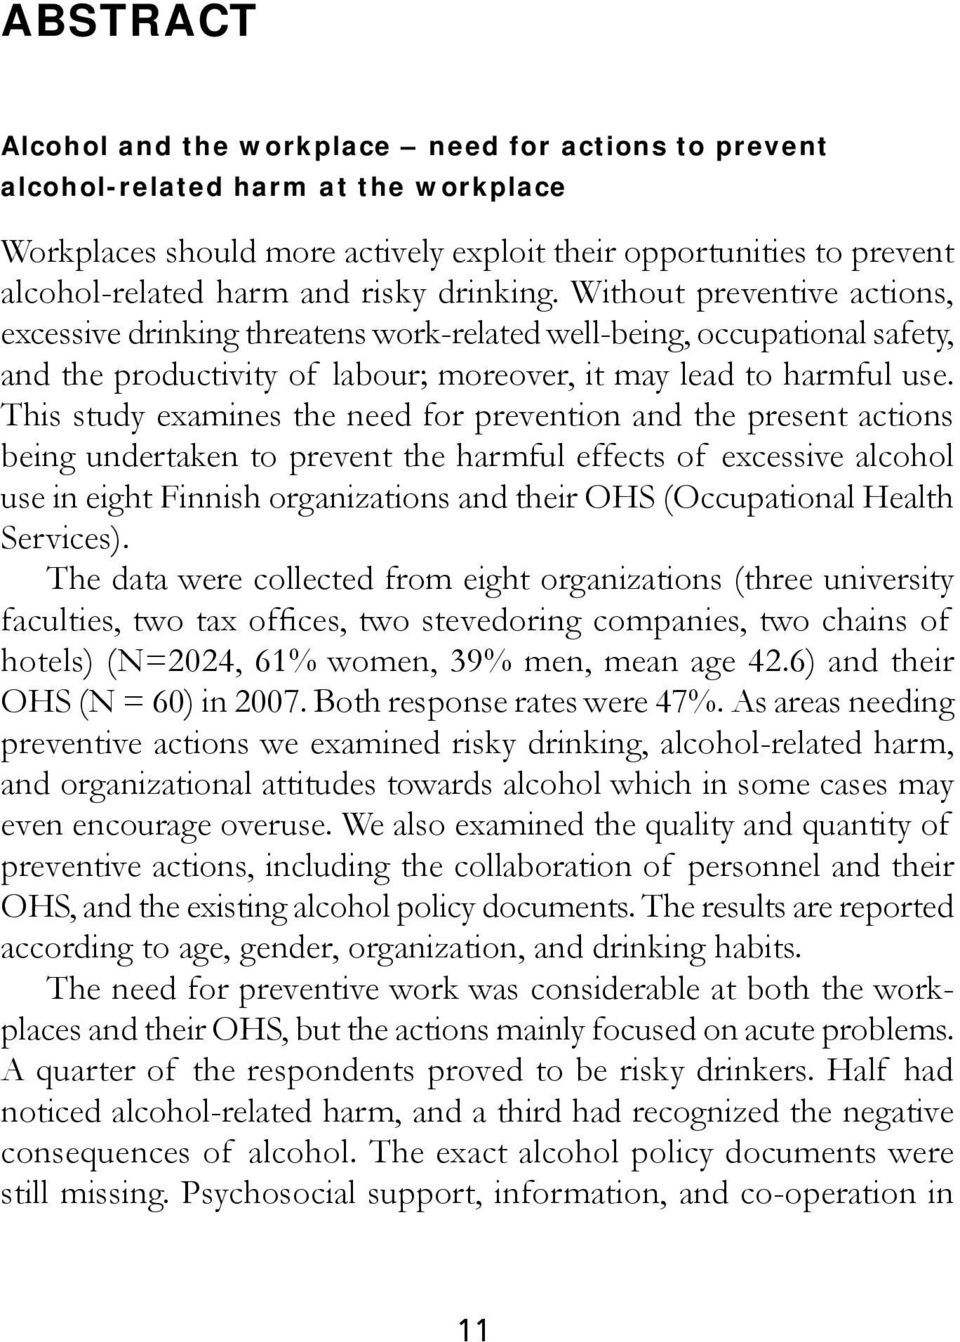 This study examines the need for prevention and the present actions being undertaken to prevent the harmful effects of excessive alcohol use in eight Finnish organizations and their OHS (Occupational